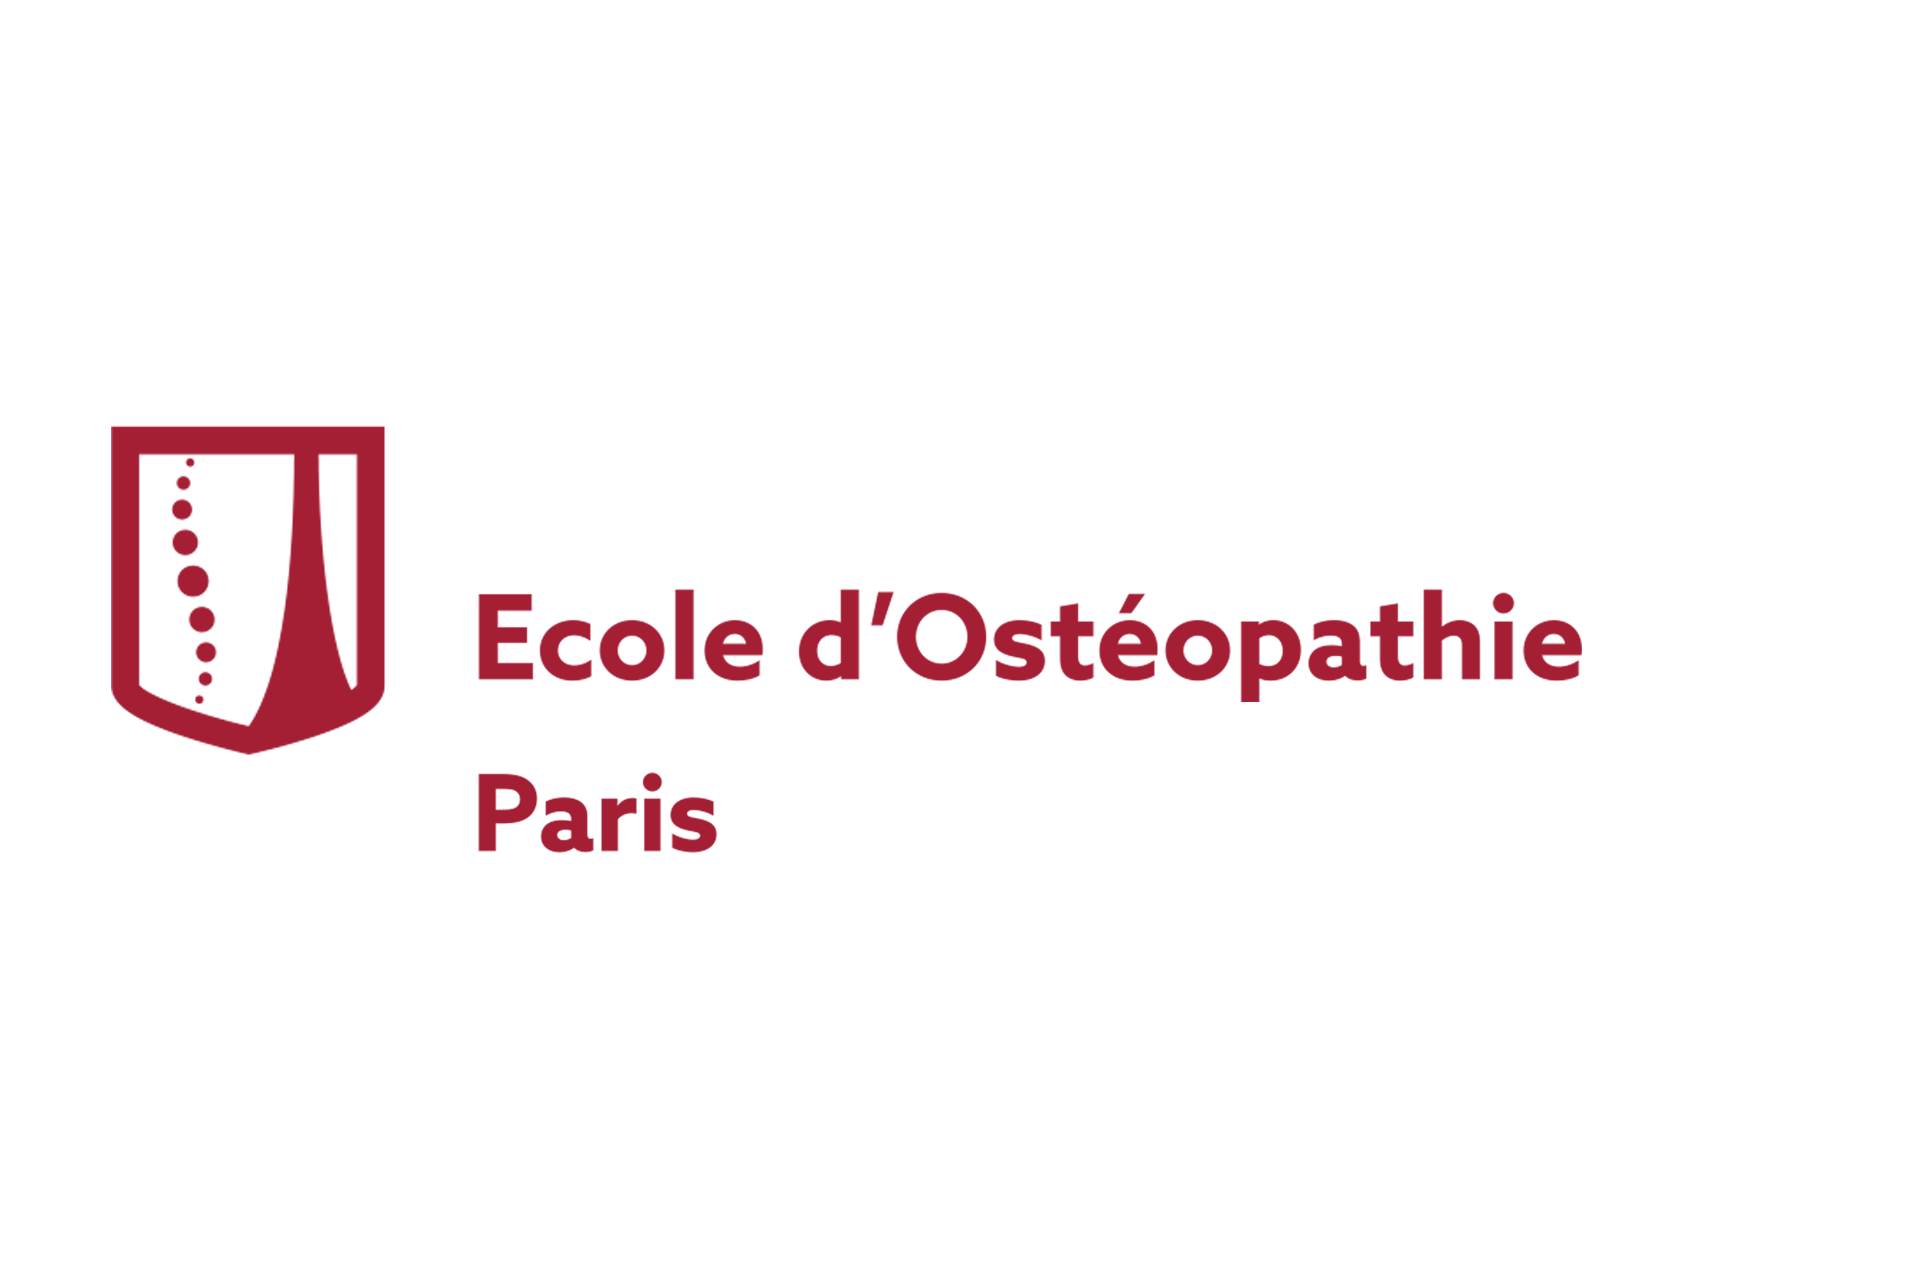 logo-eo-paris-osteopathie